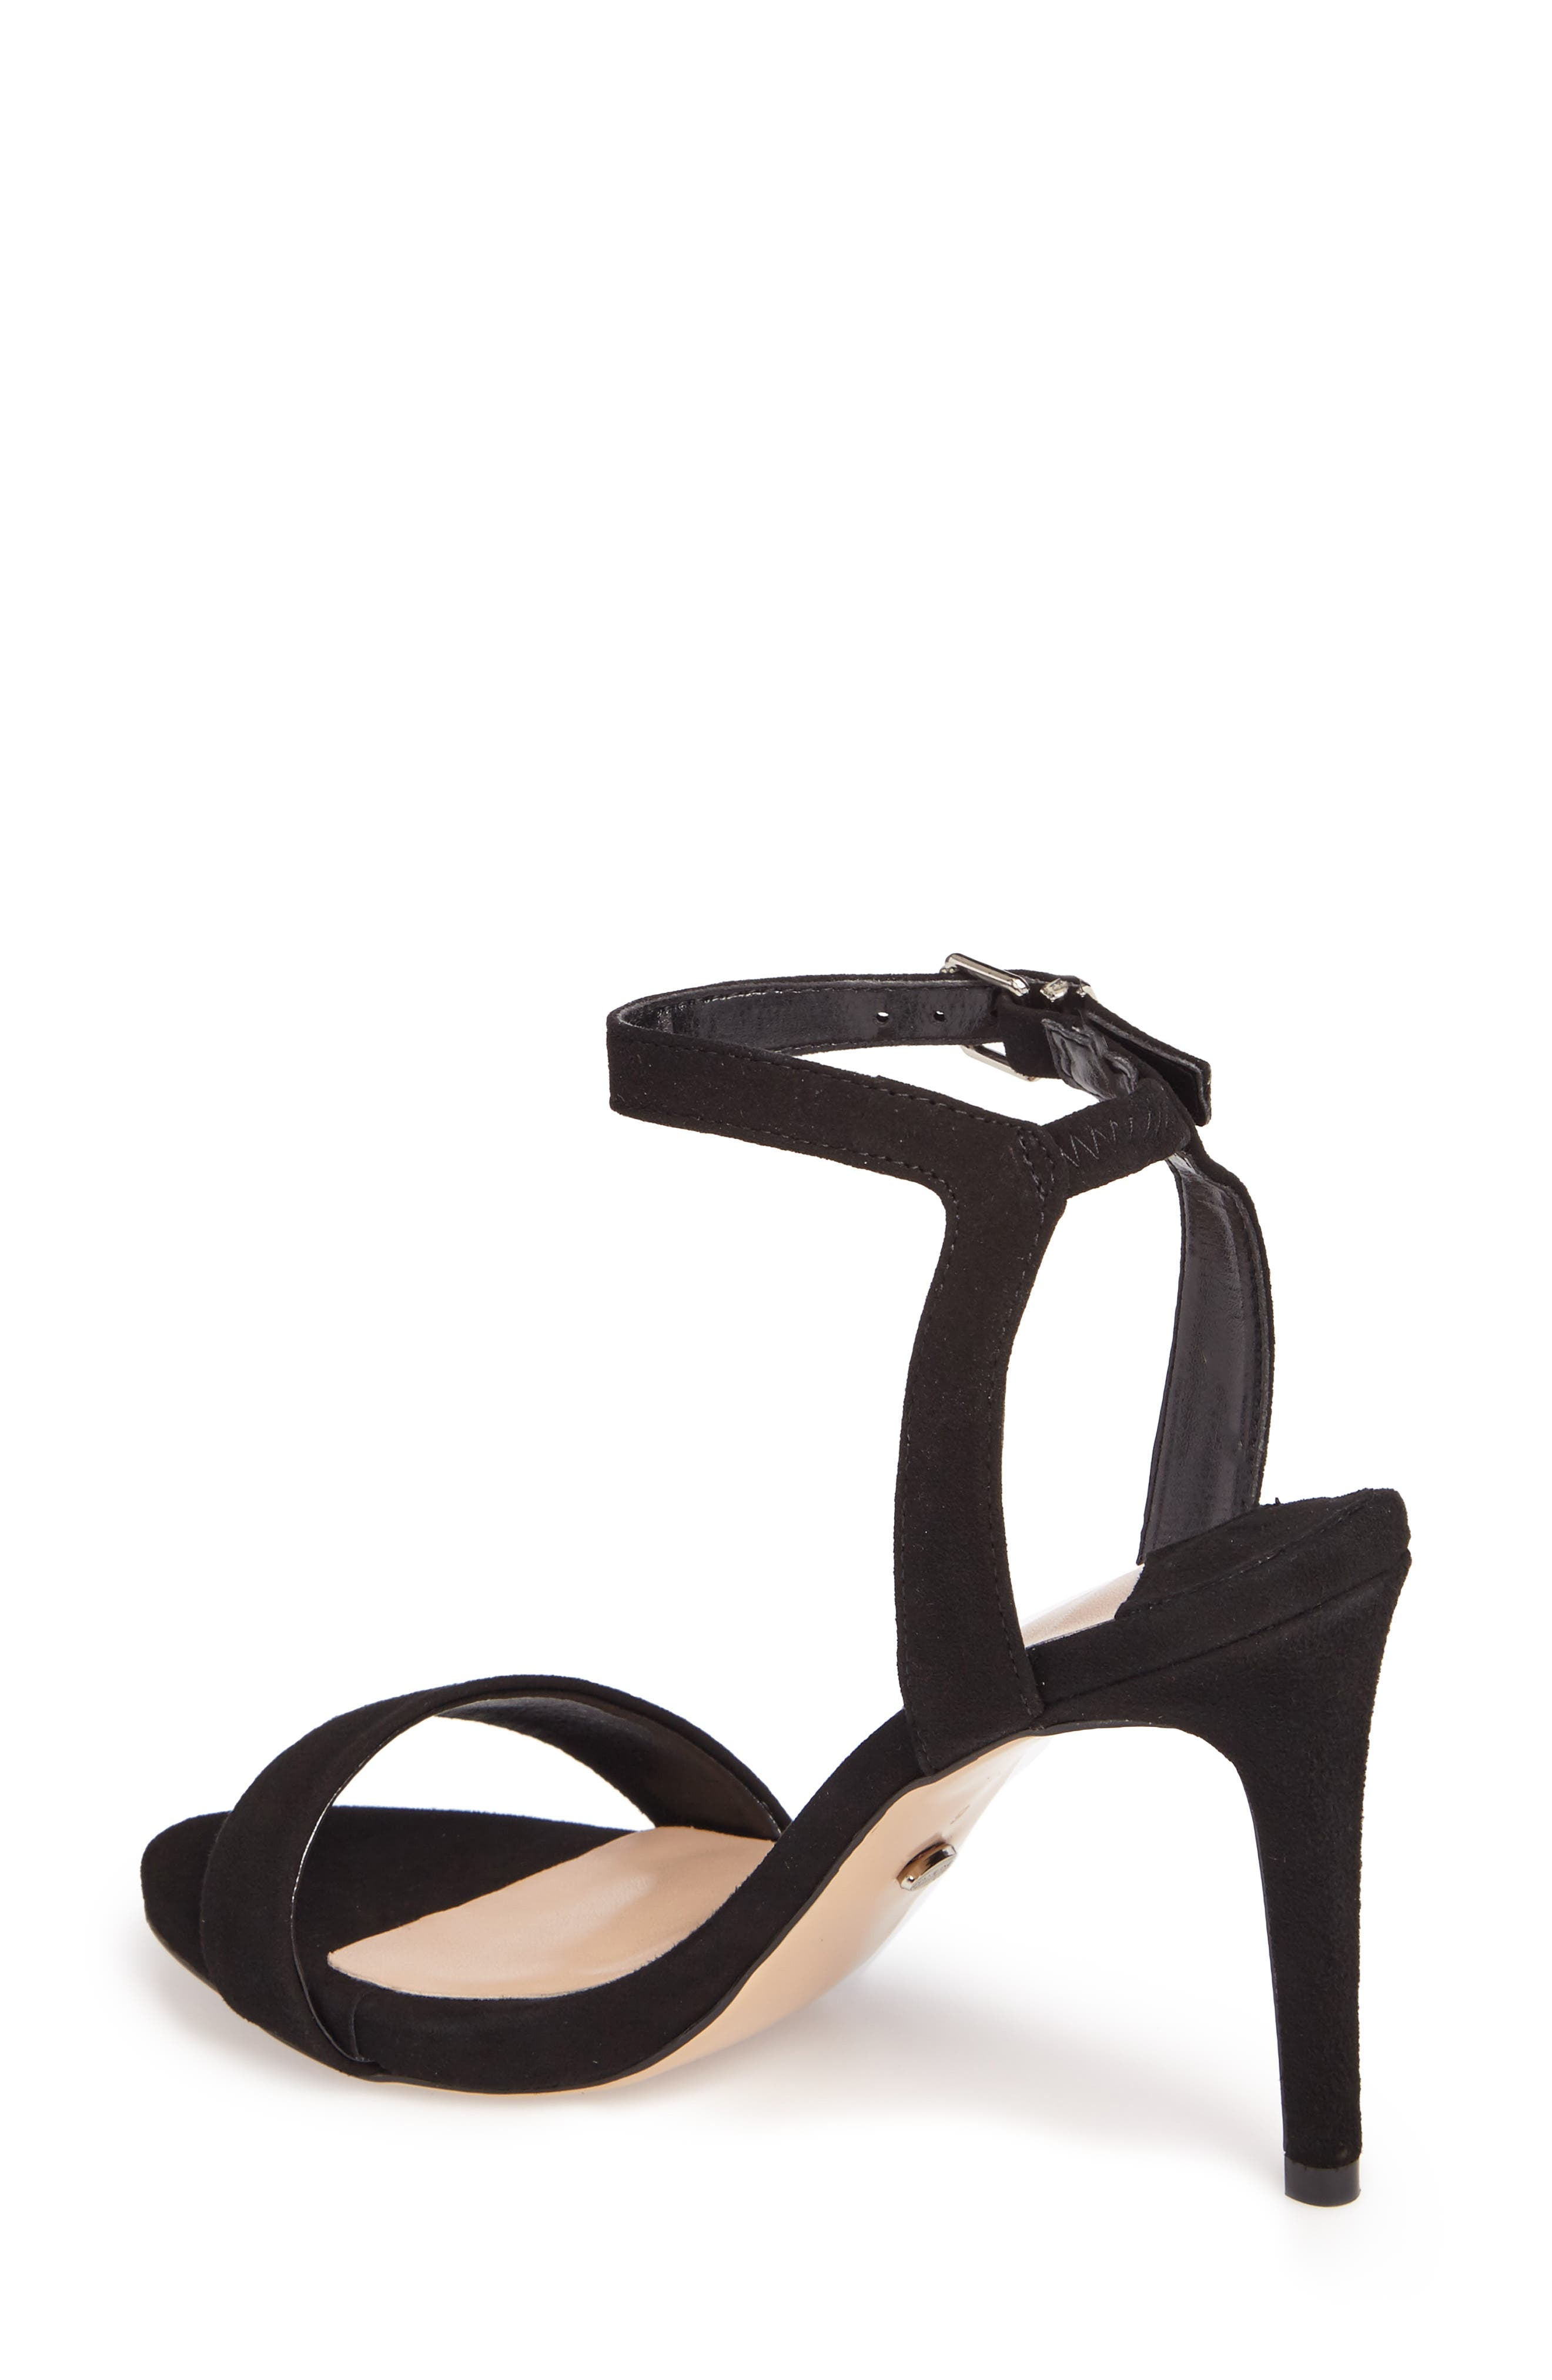 TONY BIANCO,                             Char Ankle Cuff Sandal,                             Alternate thumbnail 2, color,                             001